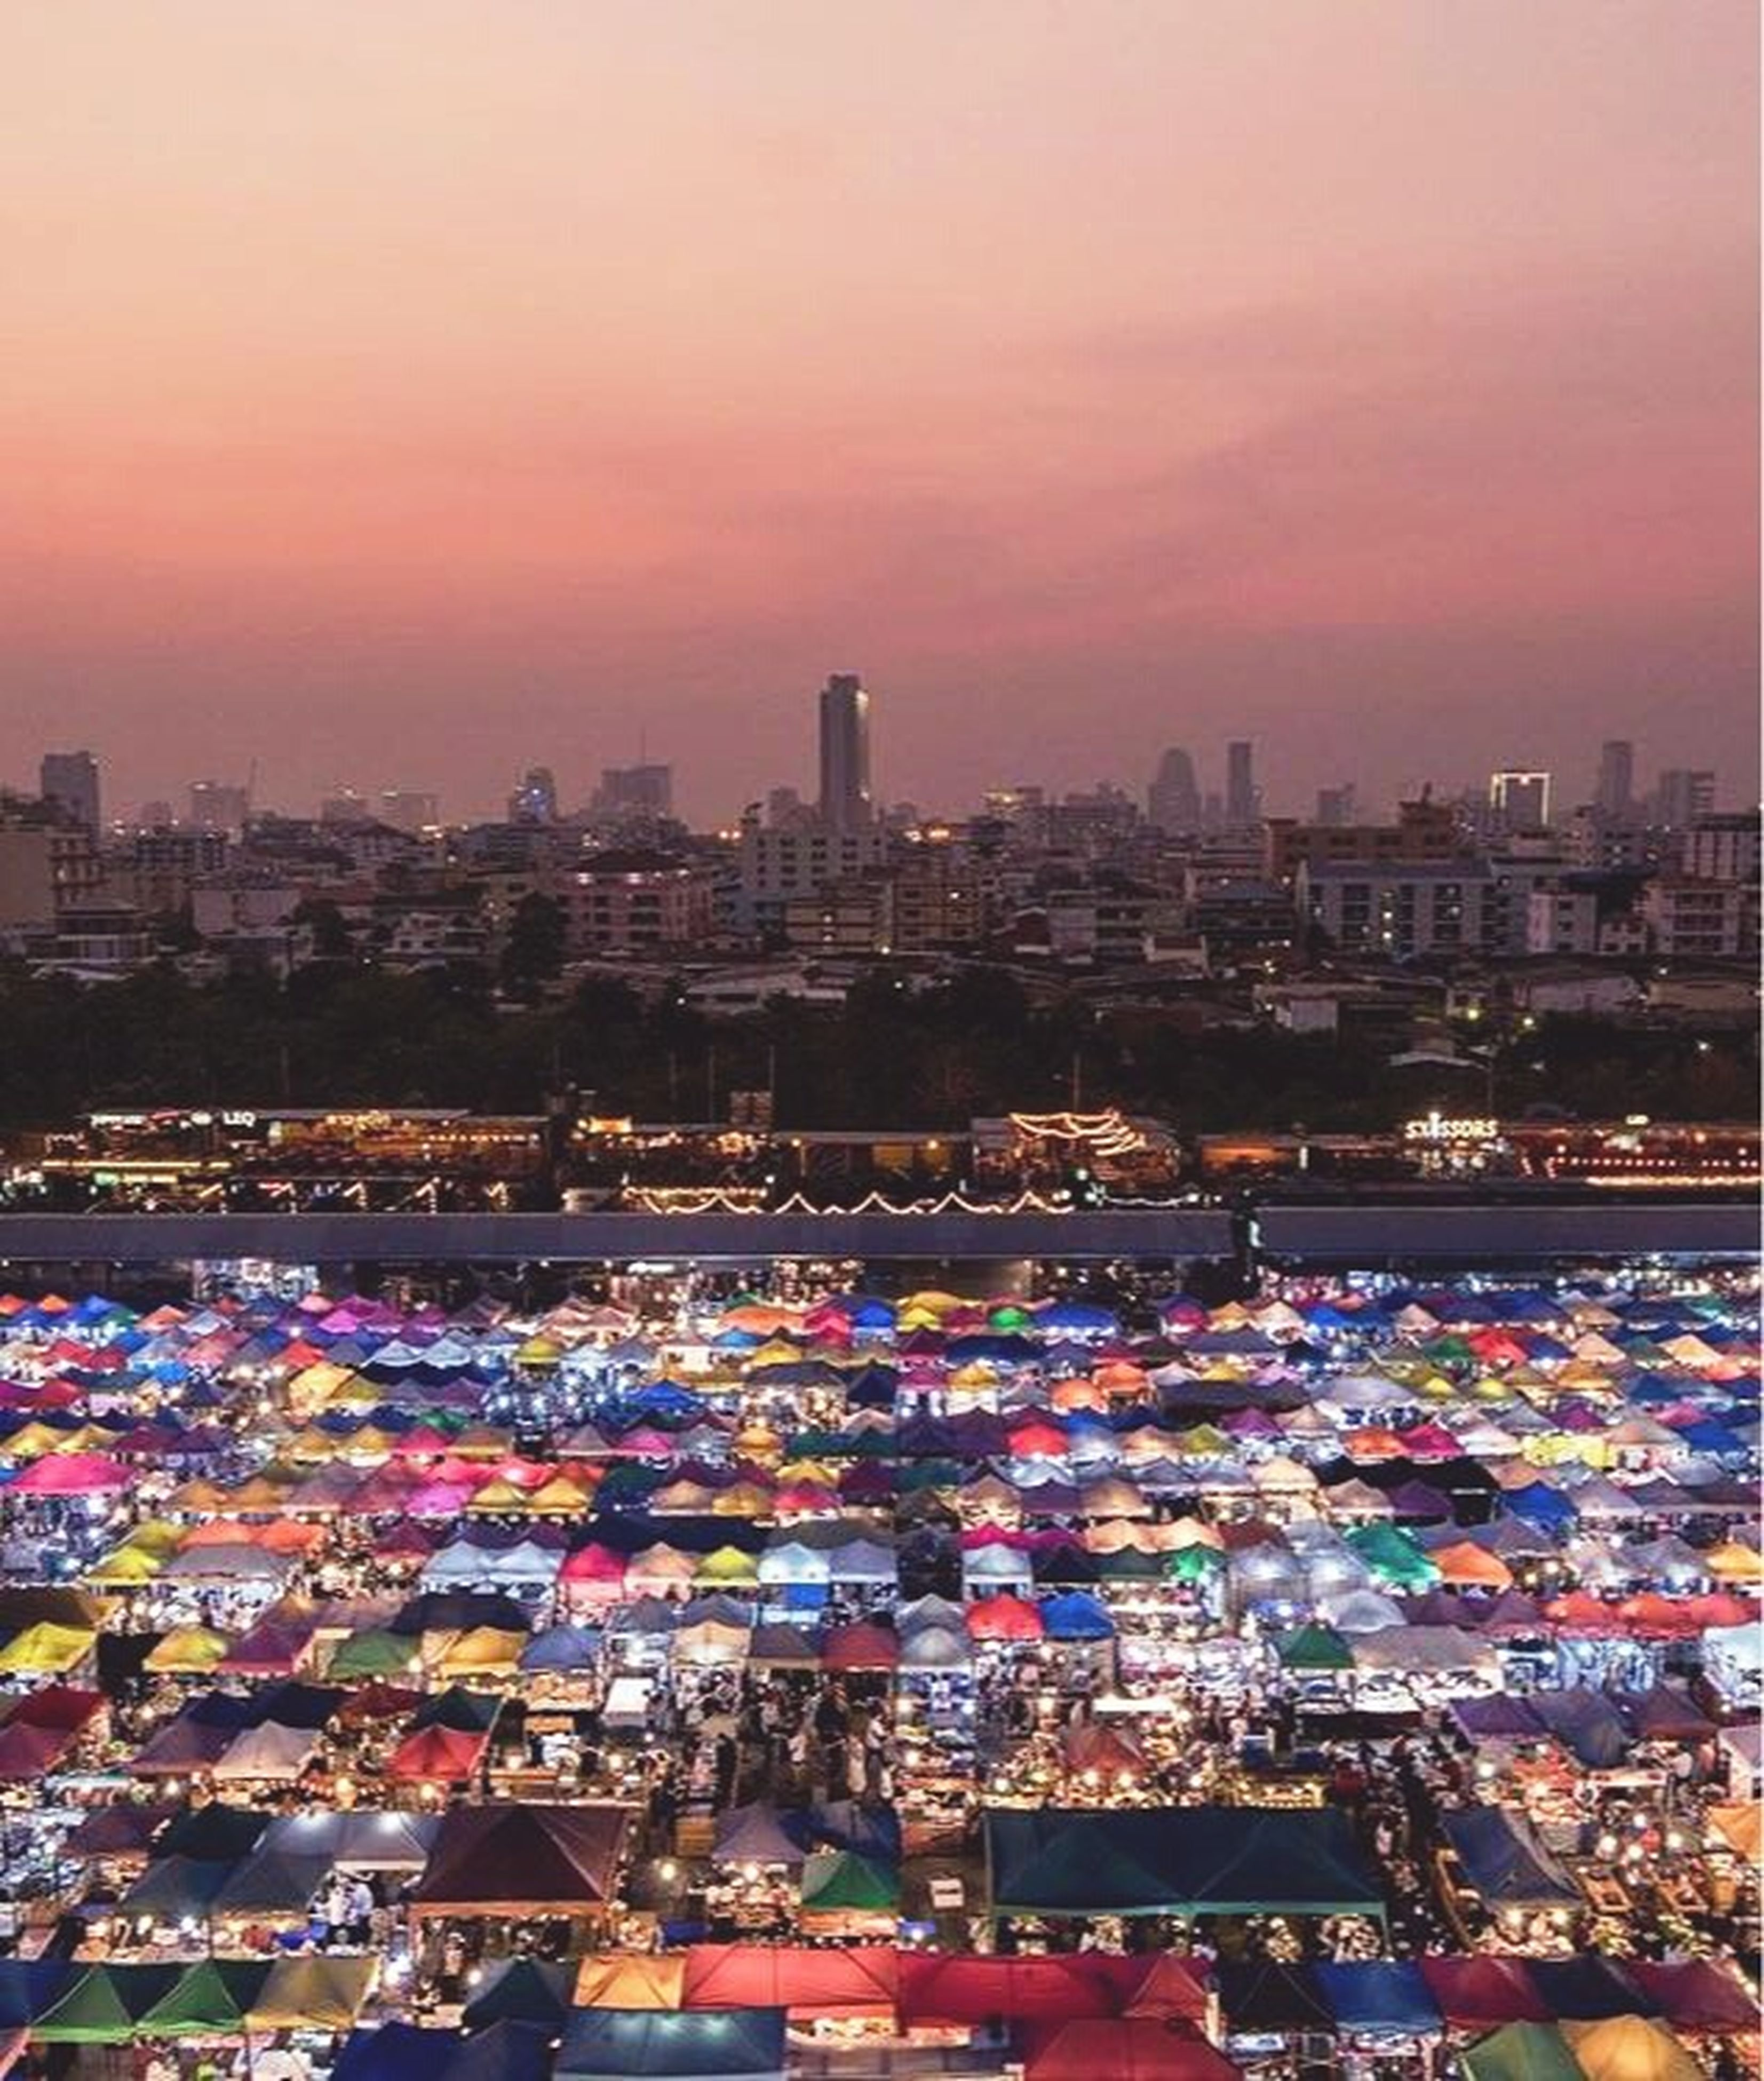 city, cityscape, sunset, travel destinations, building exterior, travel, urban skyline, outdoors, sky, cultures, skyscraper, night, architecture, modern, illuminated, downtown district, no people